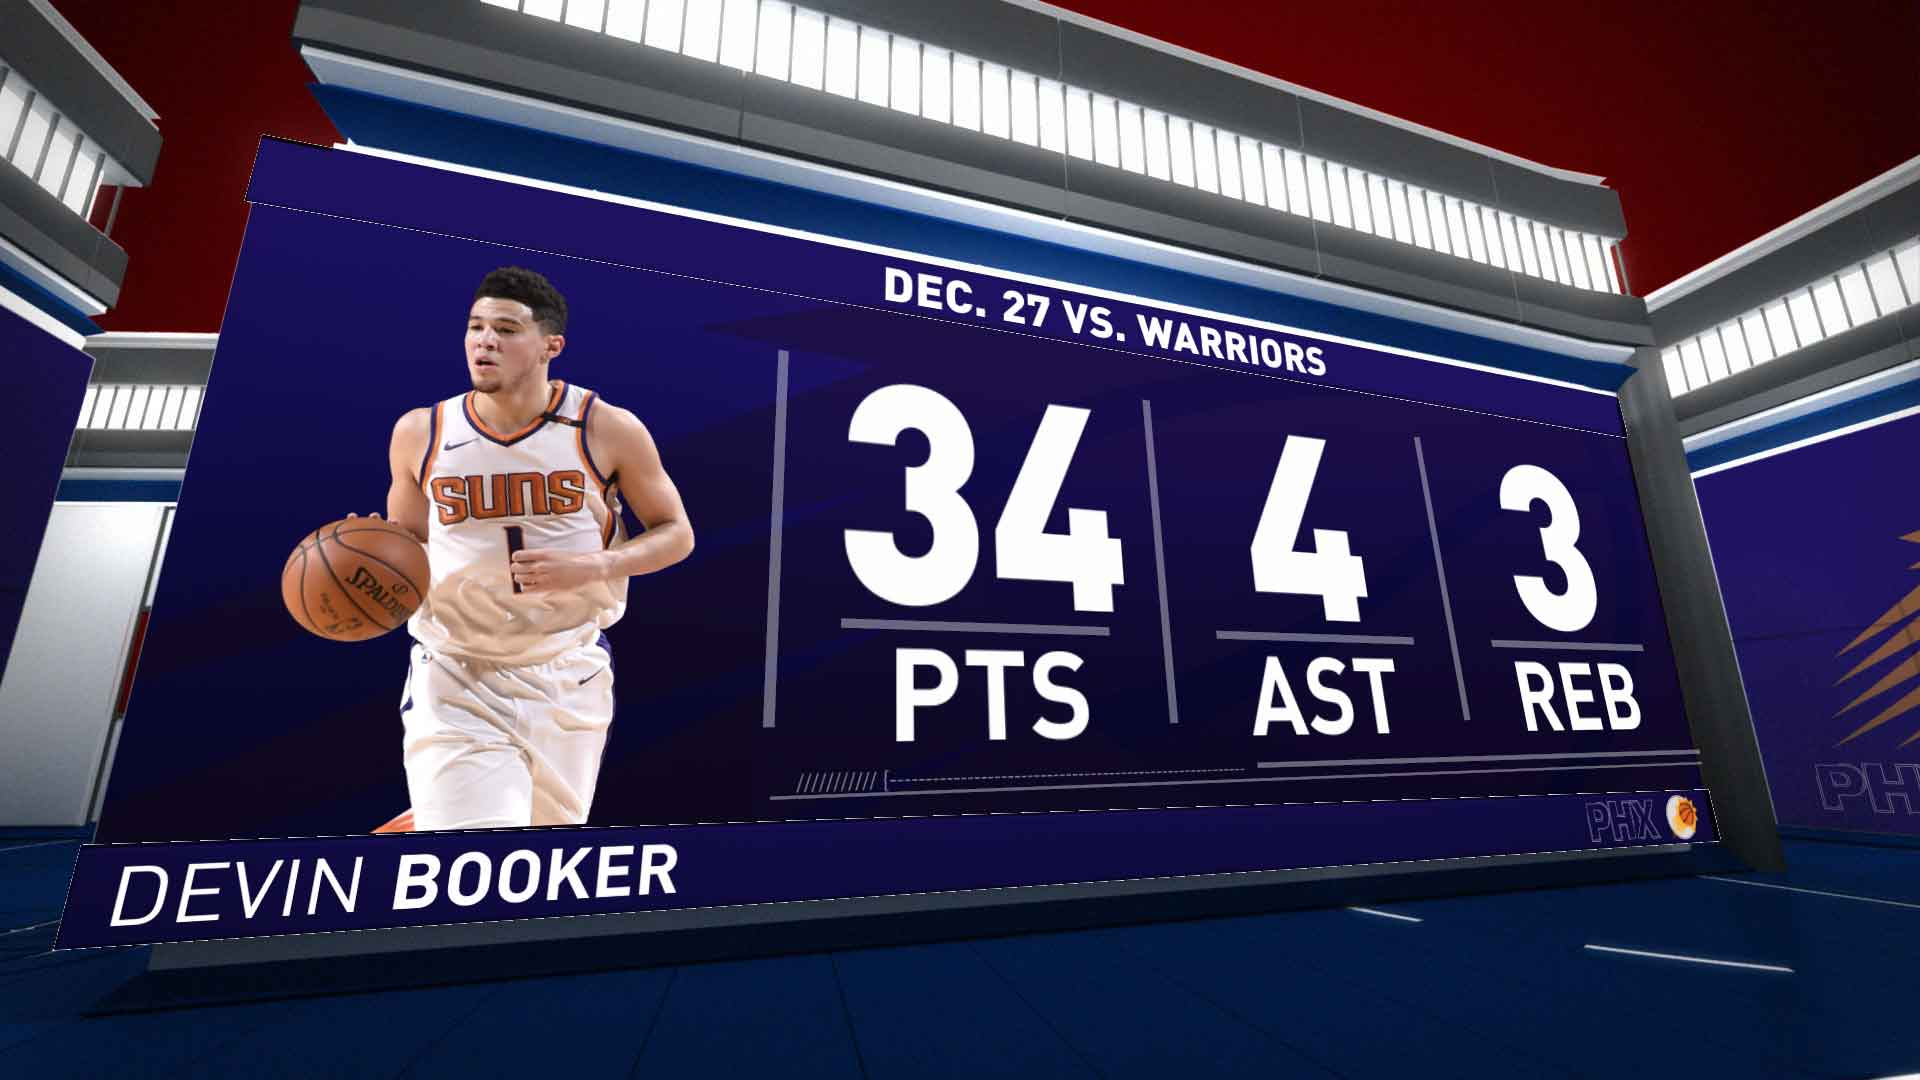 Highlights: Devin Booker | Suns vs. Warriors